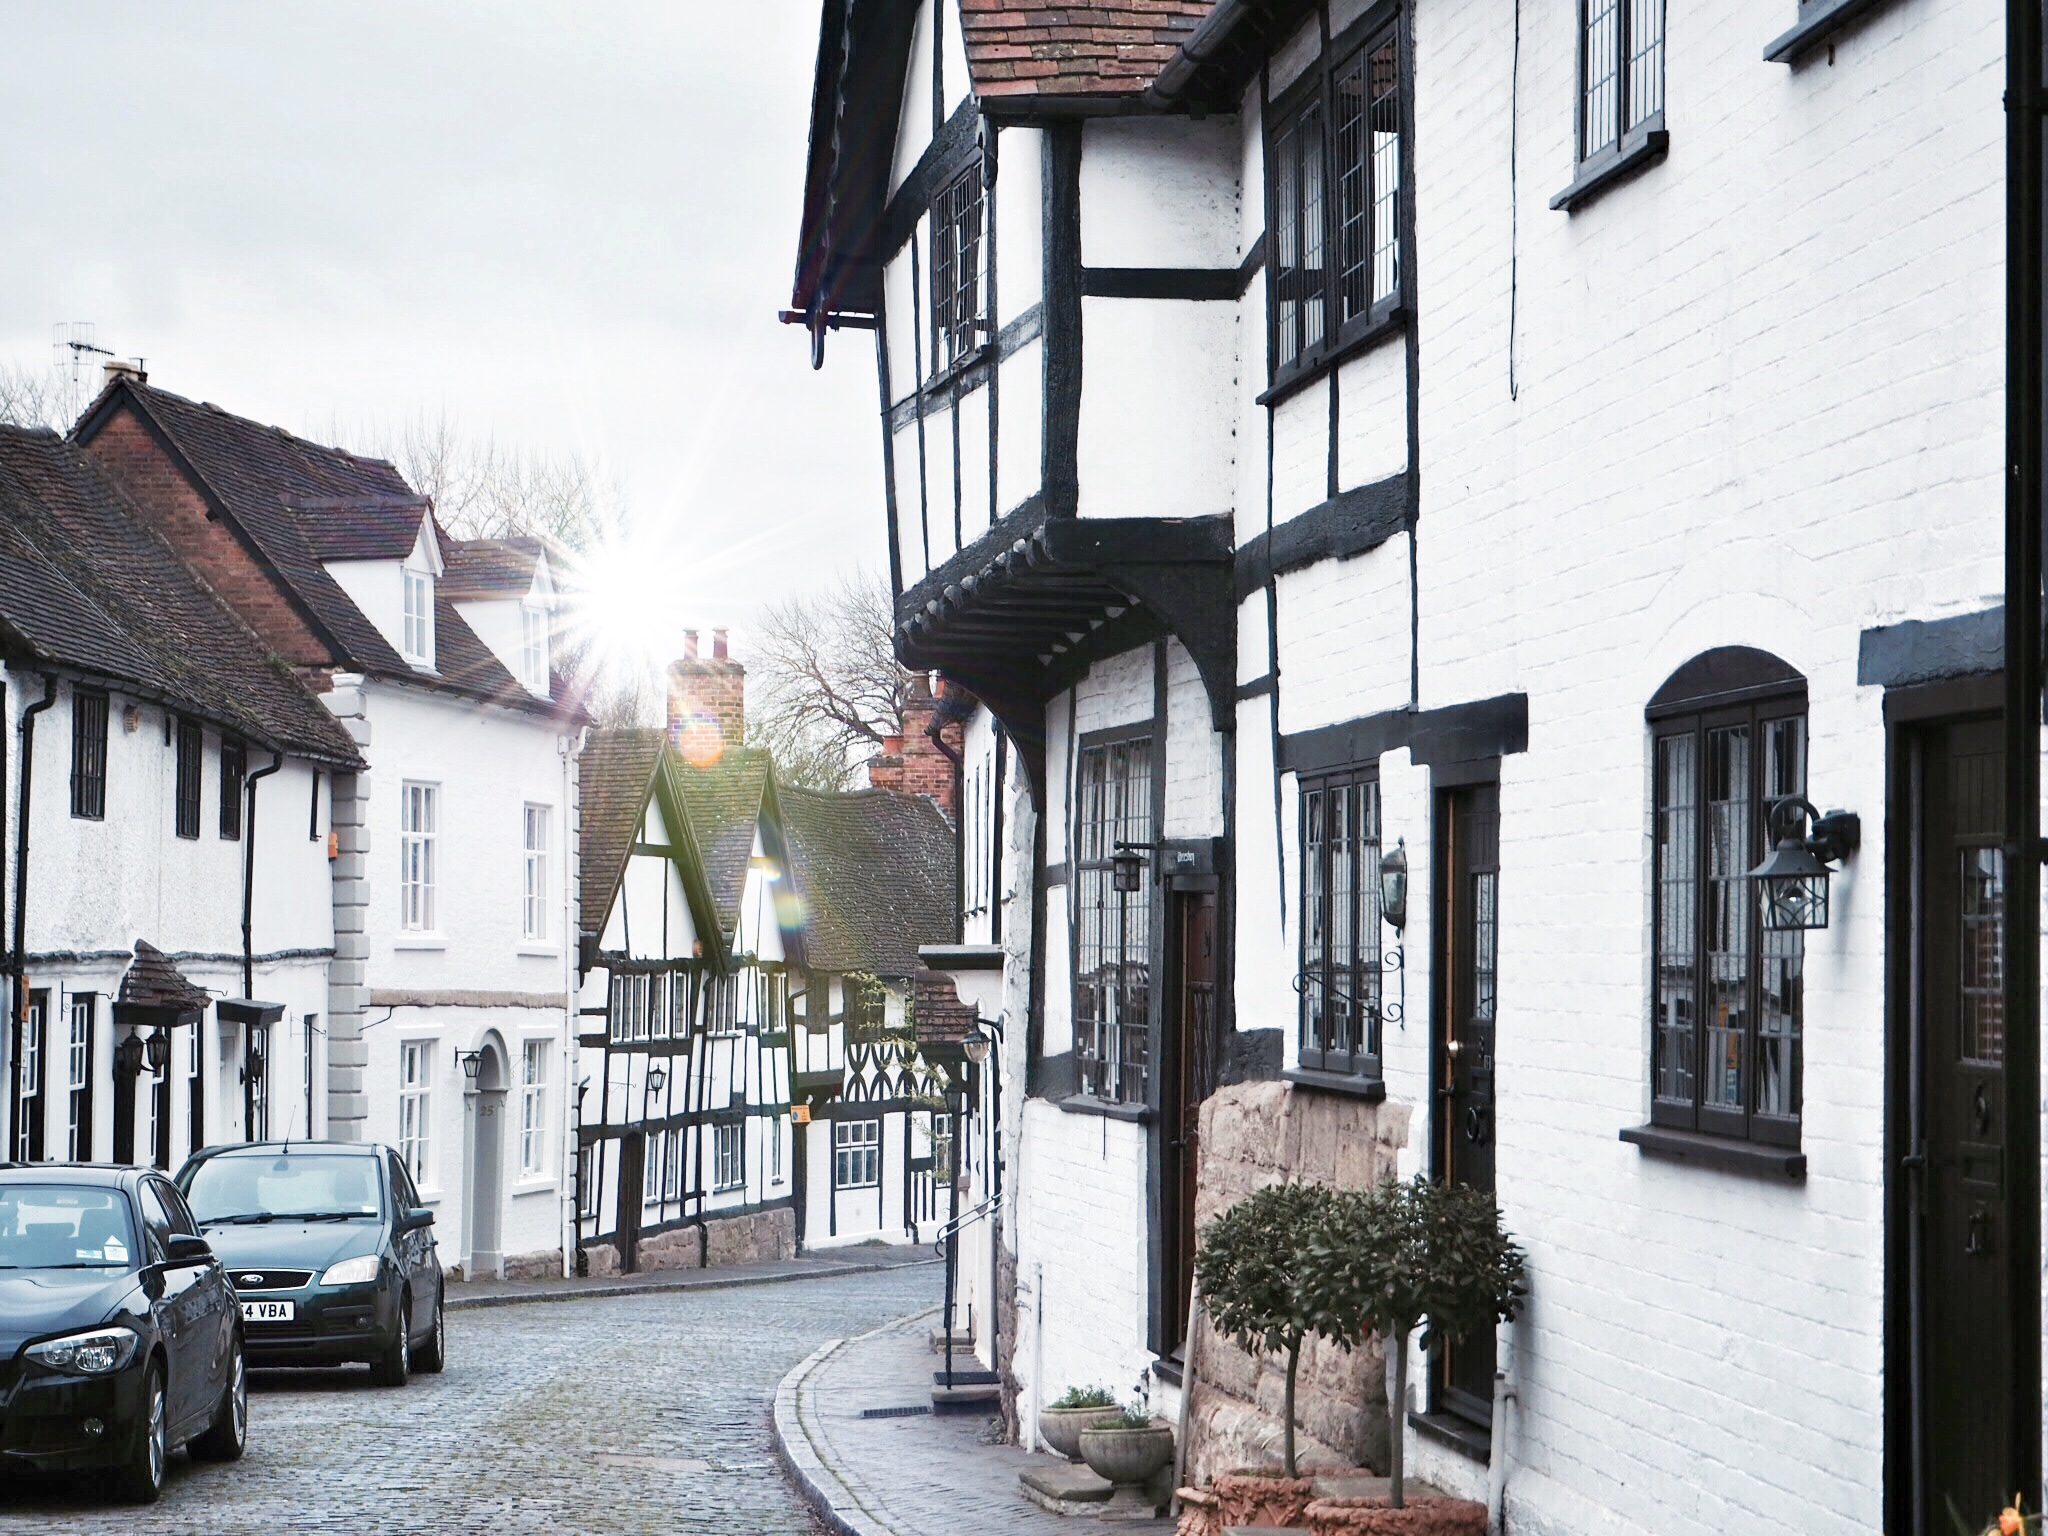 Tudor houses in Warwick, things to do in Warwick